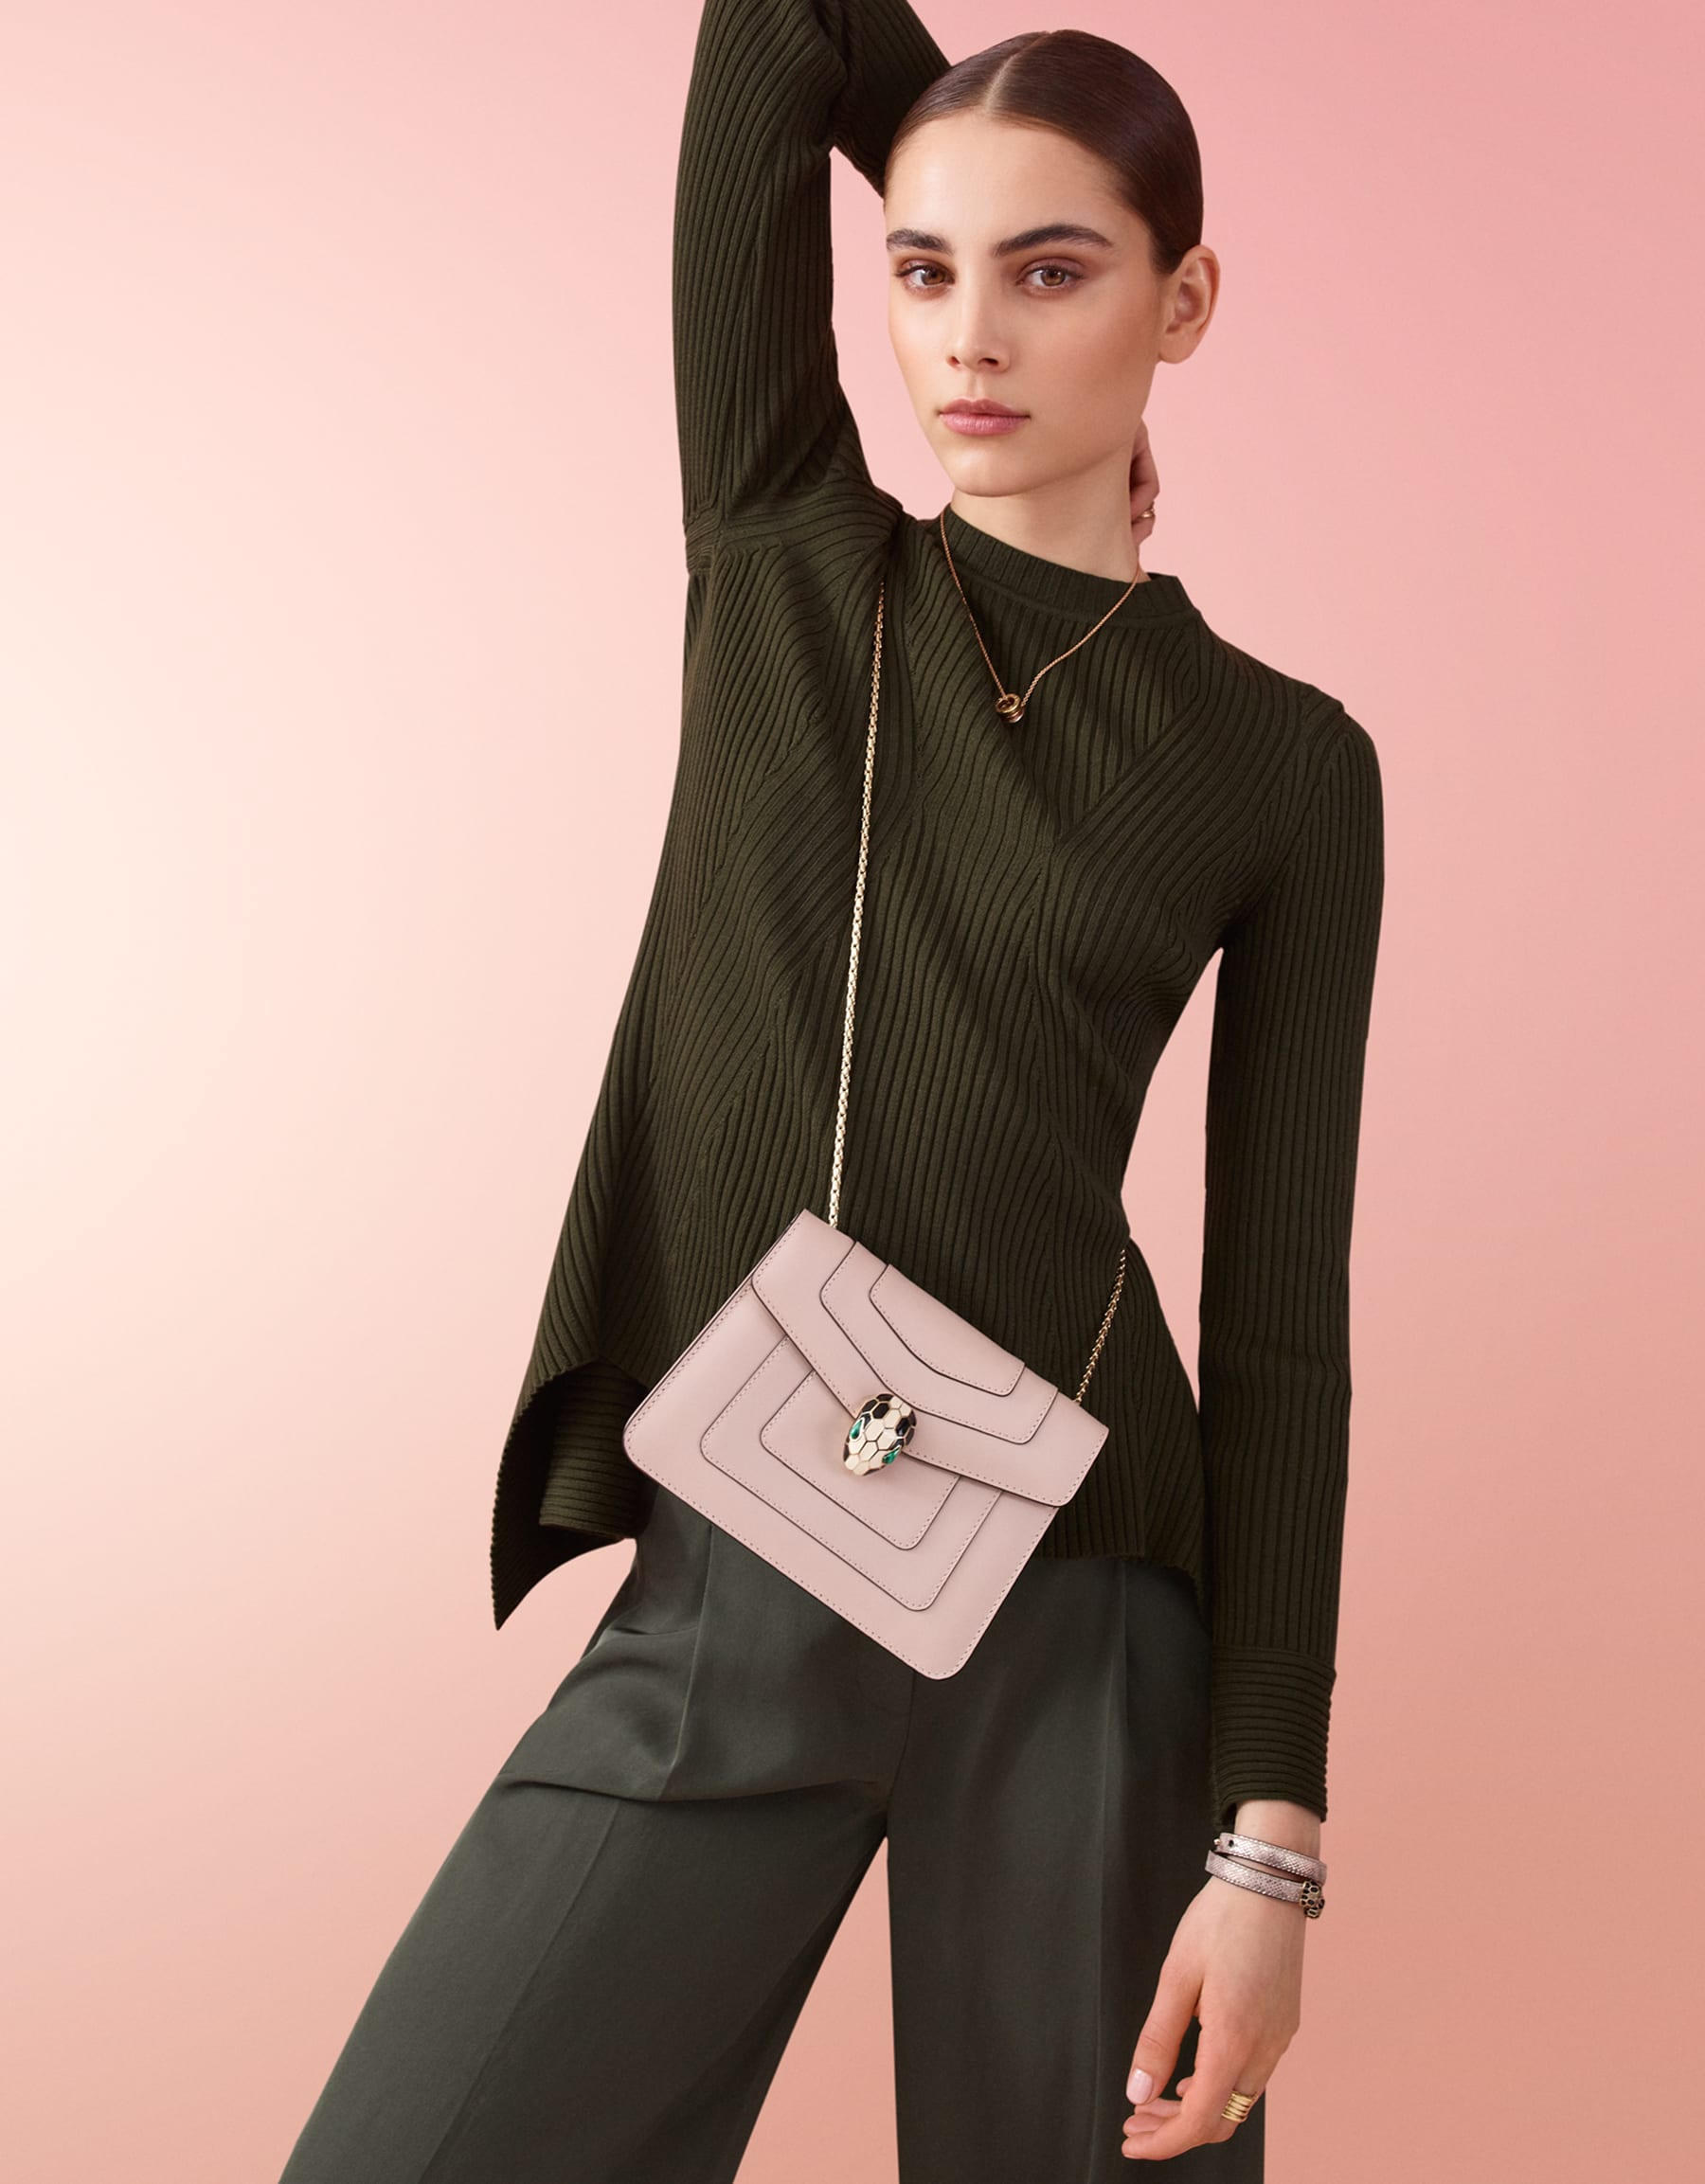 Serpenti Forever crossbody bag in milky opal smooth calf leather. Snakehead closure in light gold plated brass decorated with black and white enamel, and green malachite eyes. 287922 image 5